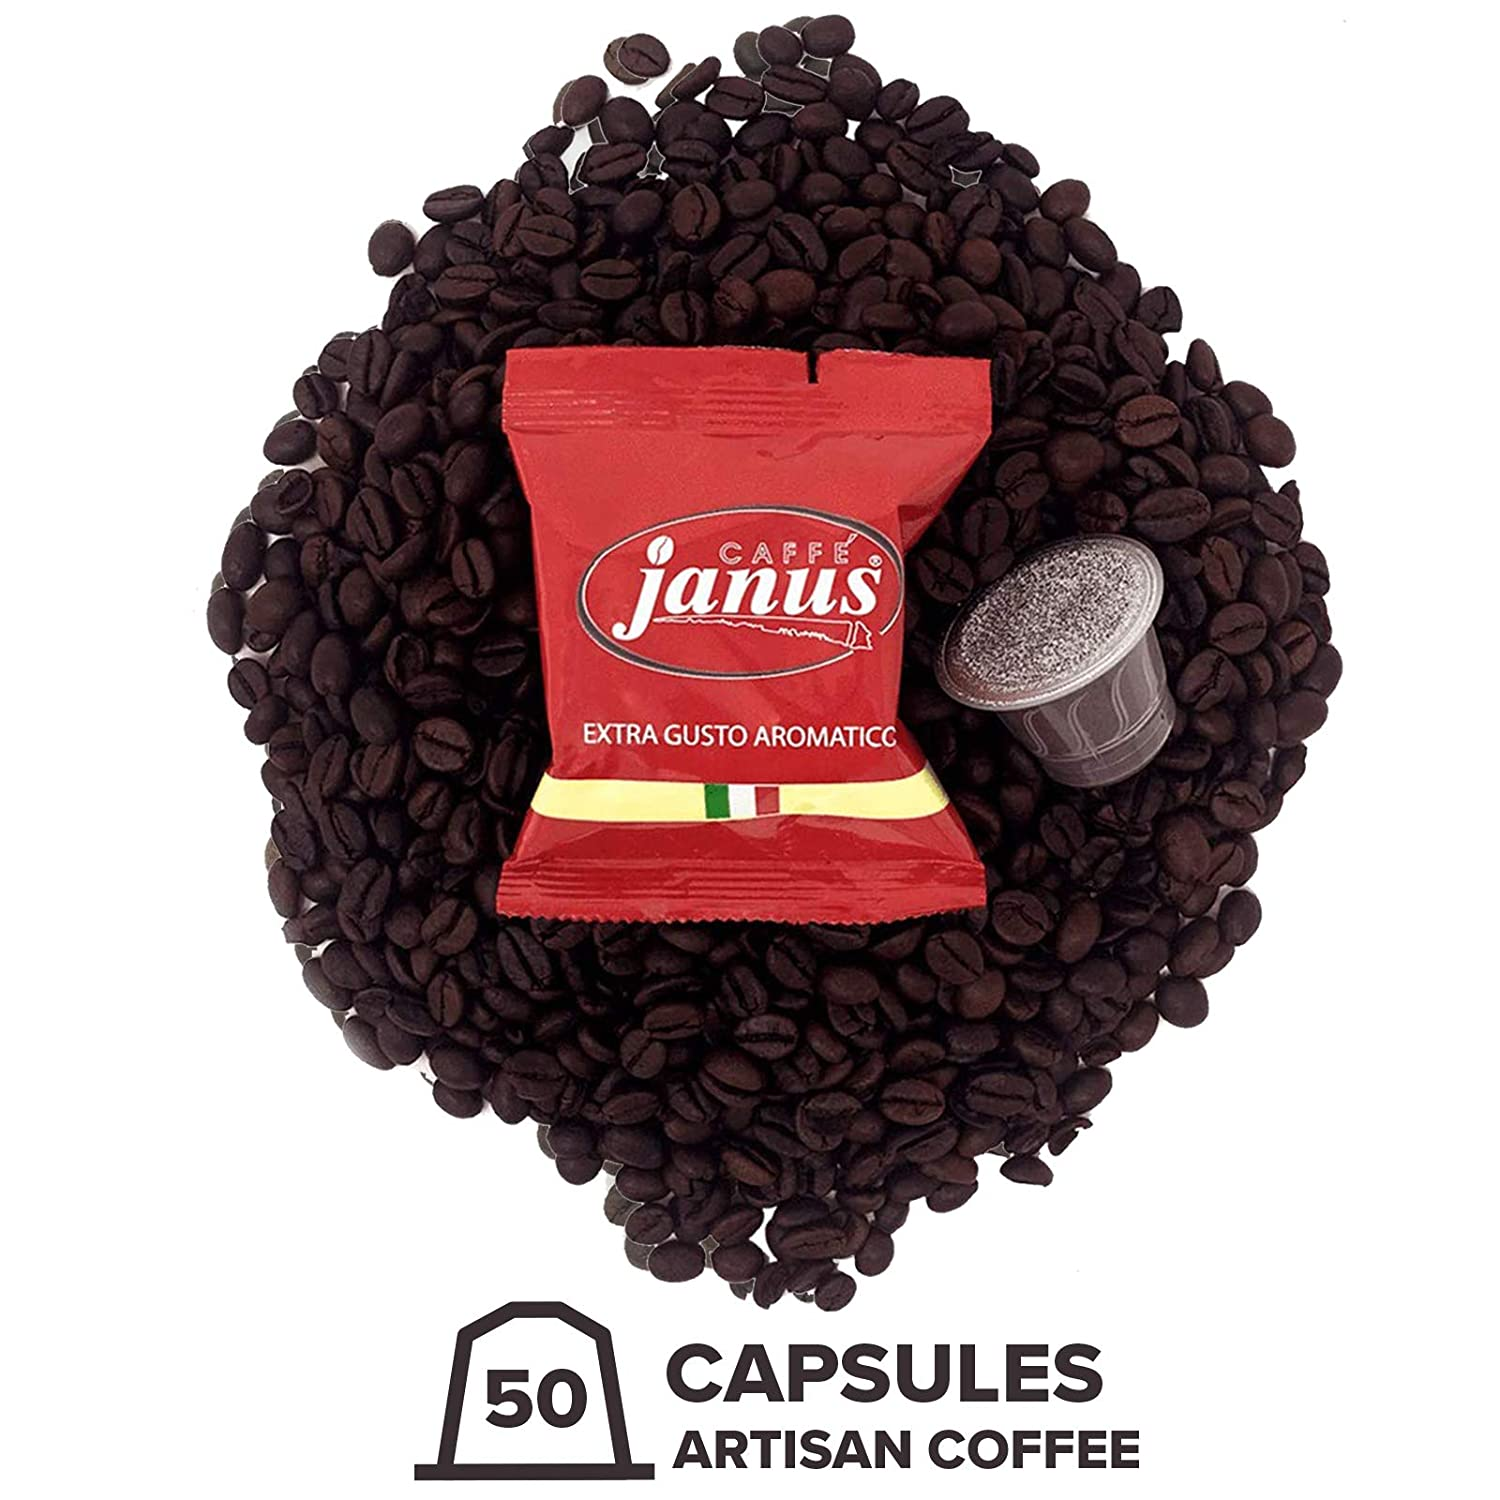 Janus EXTRA Gusto Aromatico Nespresso compatible capsules espresso single serve